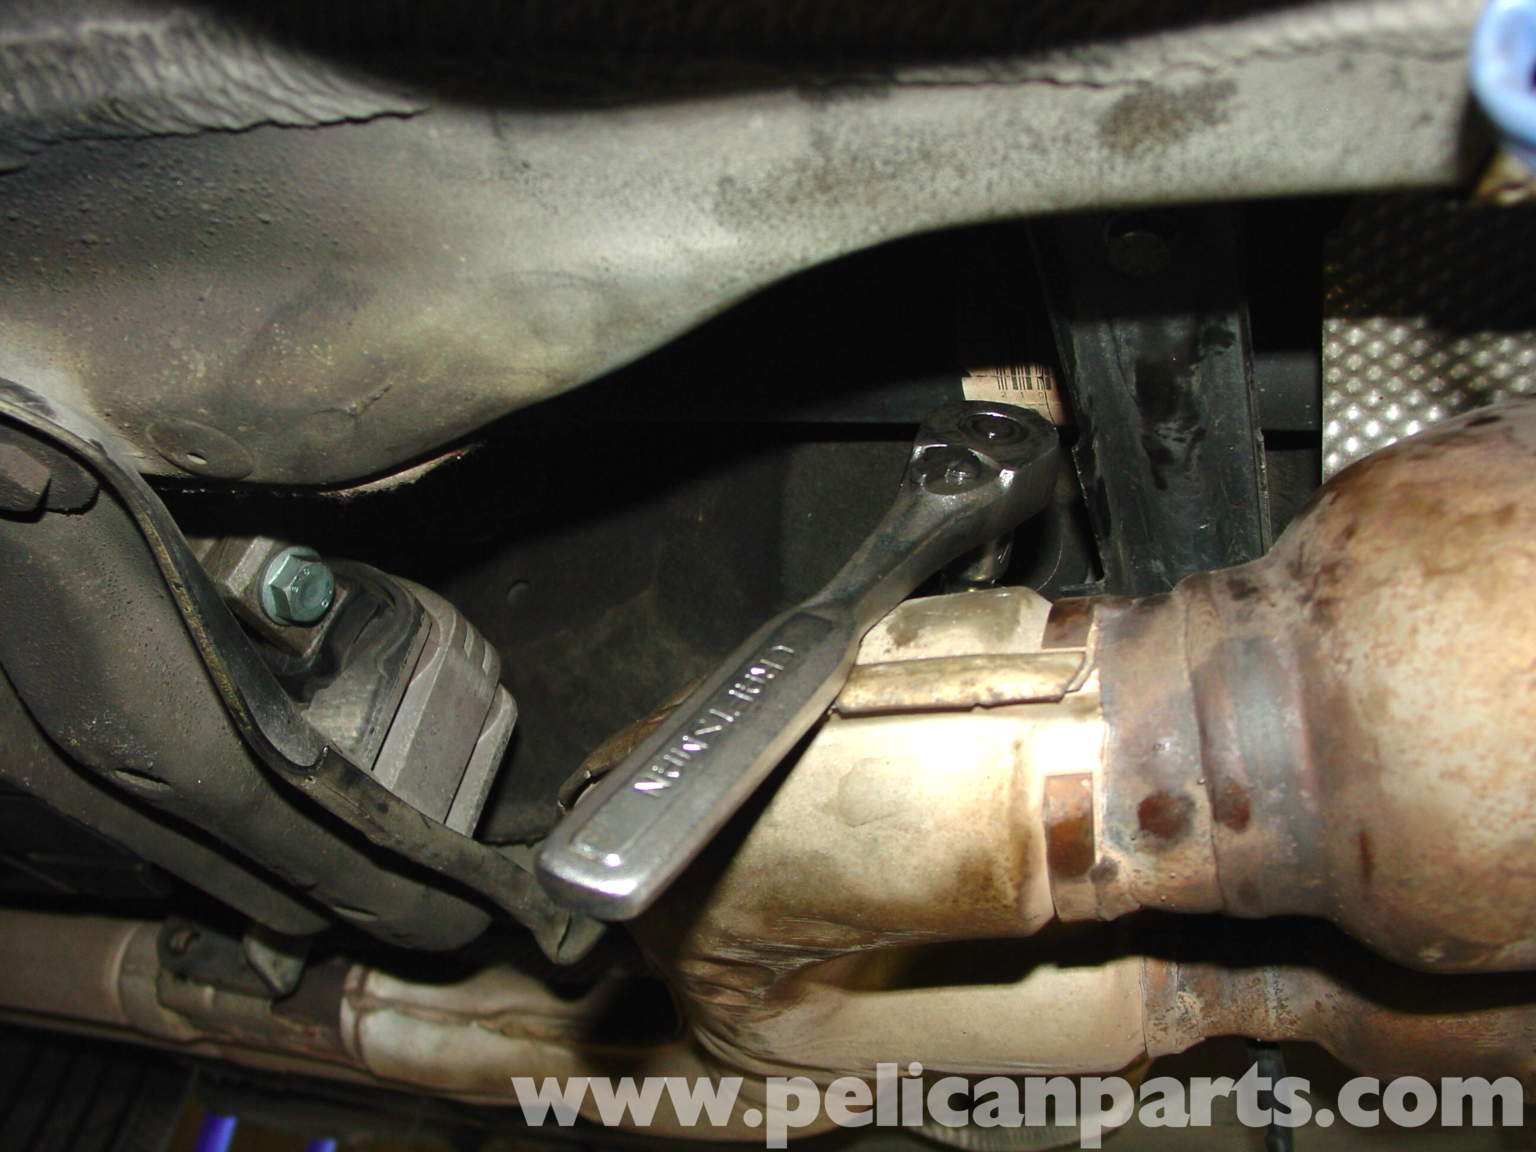 1999 Mercedes Benz C230 Oxygen Sensor AutoPartsKart also Crankshaft Position Sensor Location besides Mercedes Oxygen Sensor moreover O2 Sensor Location  Pic  Mb Undercarriage 5 16 14 Tires as well Mercedes O2 Sensor Replacement. on oxygen sensor location on mercedes e320